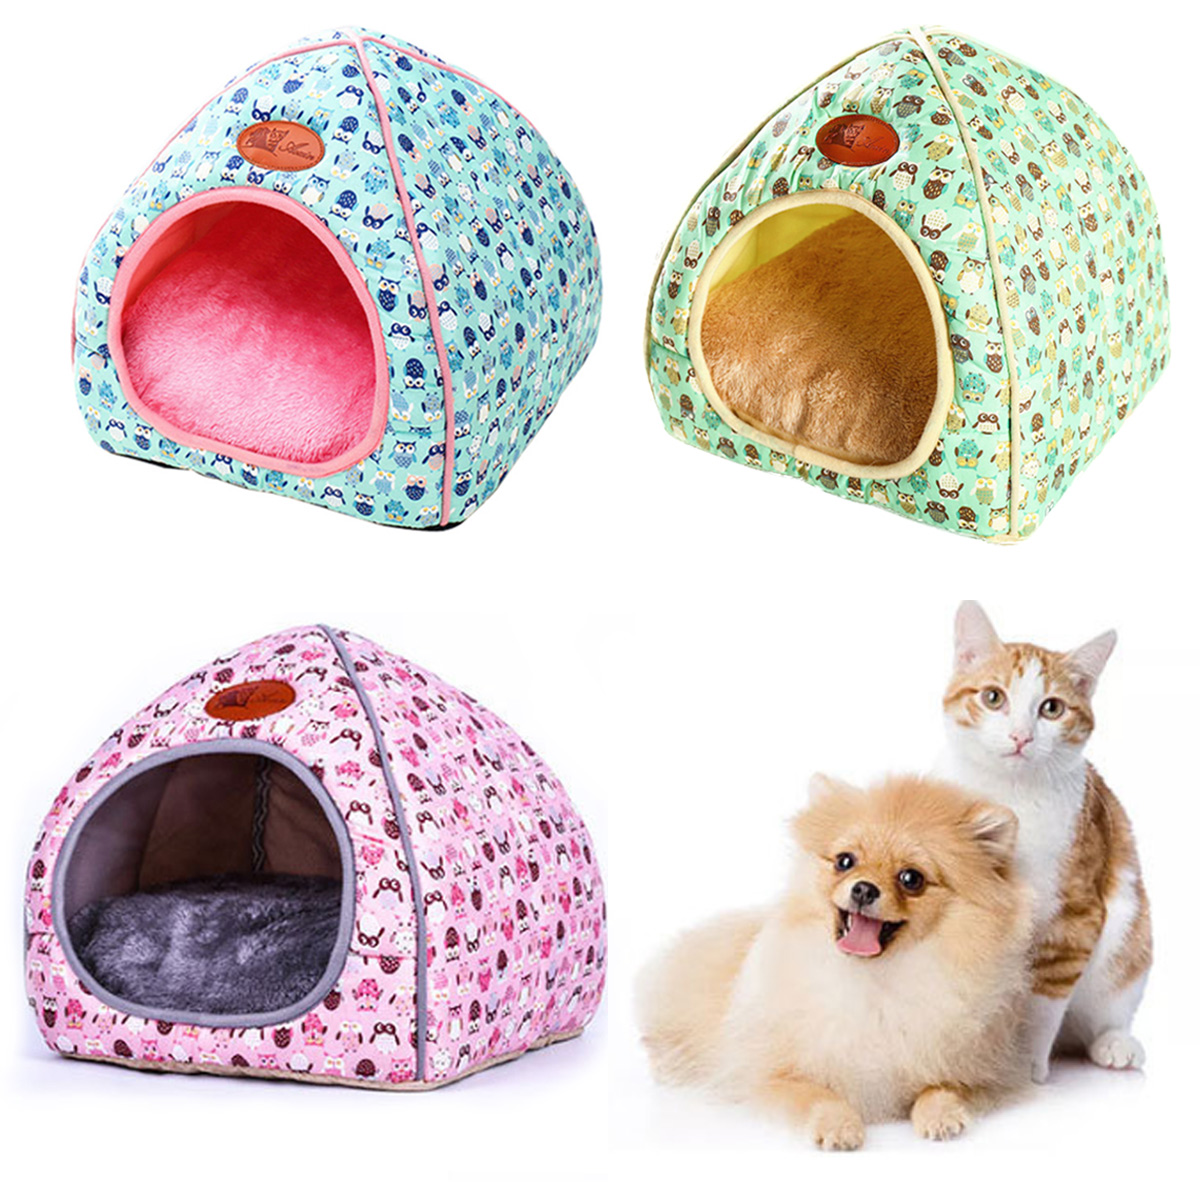 Pet Dog Cat House Tent Kennel Doggy Fashion Winter Warm Soft Cushion Basket Animal Bed Cave Pet Products